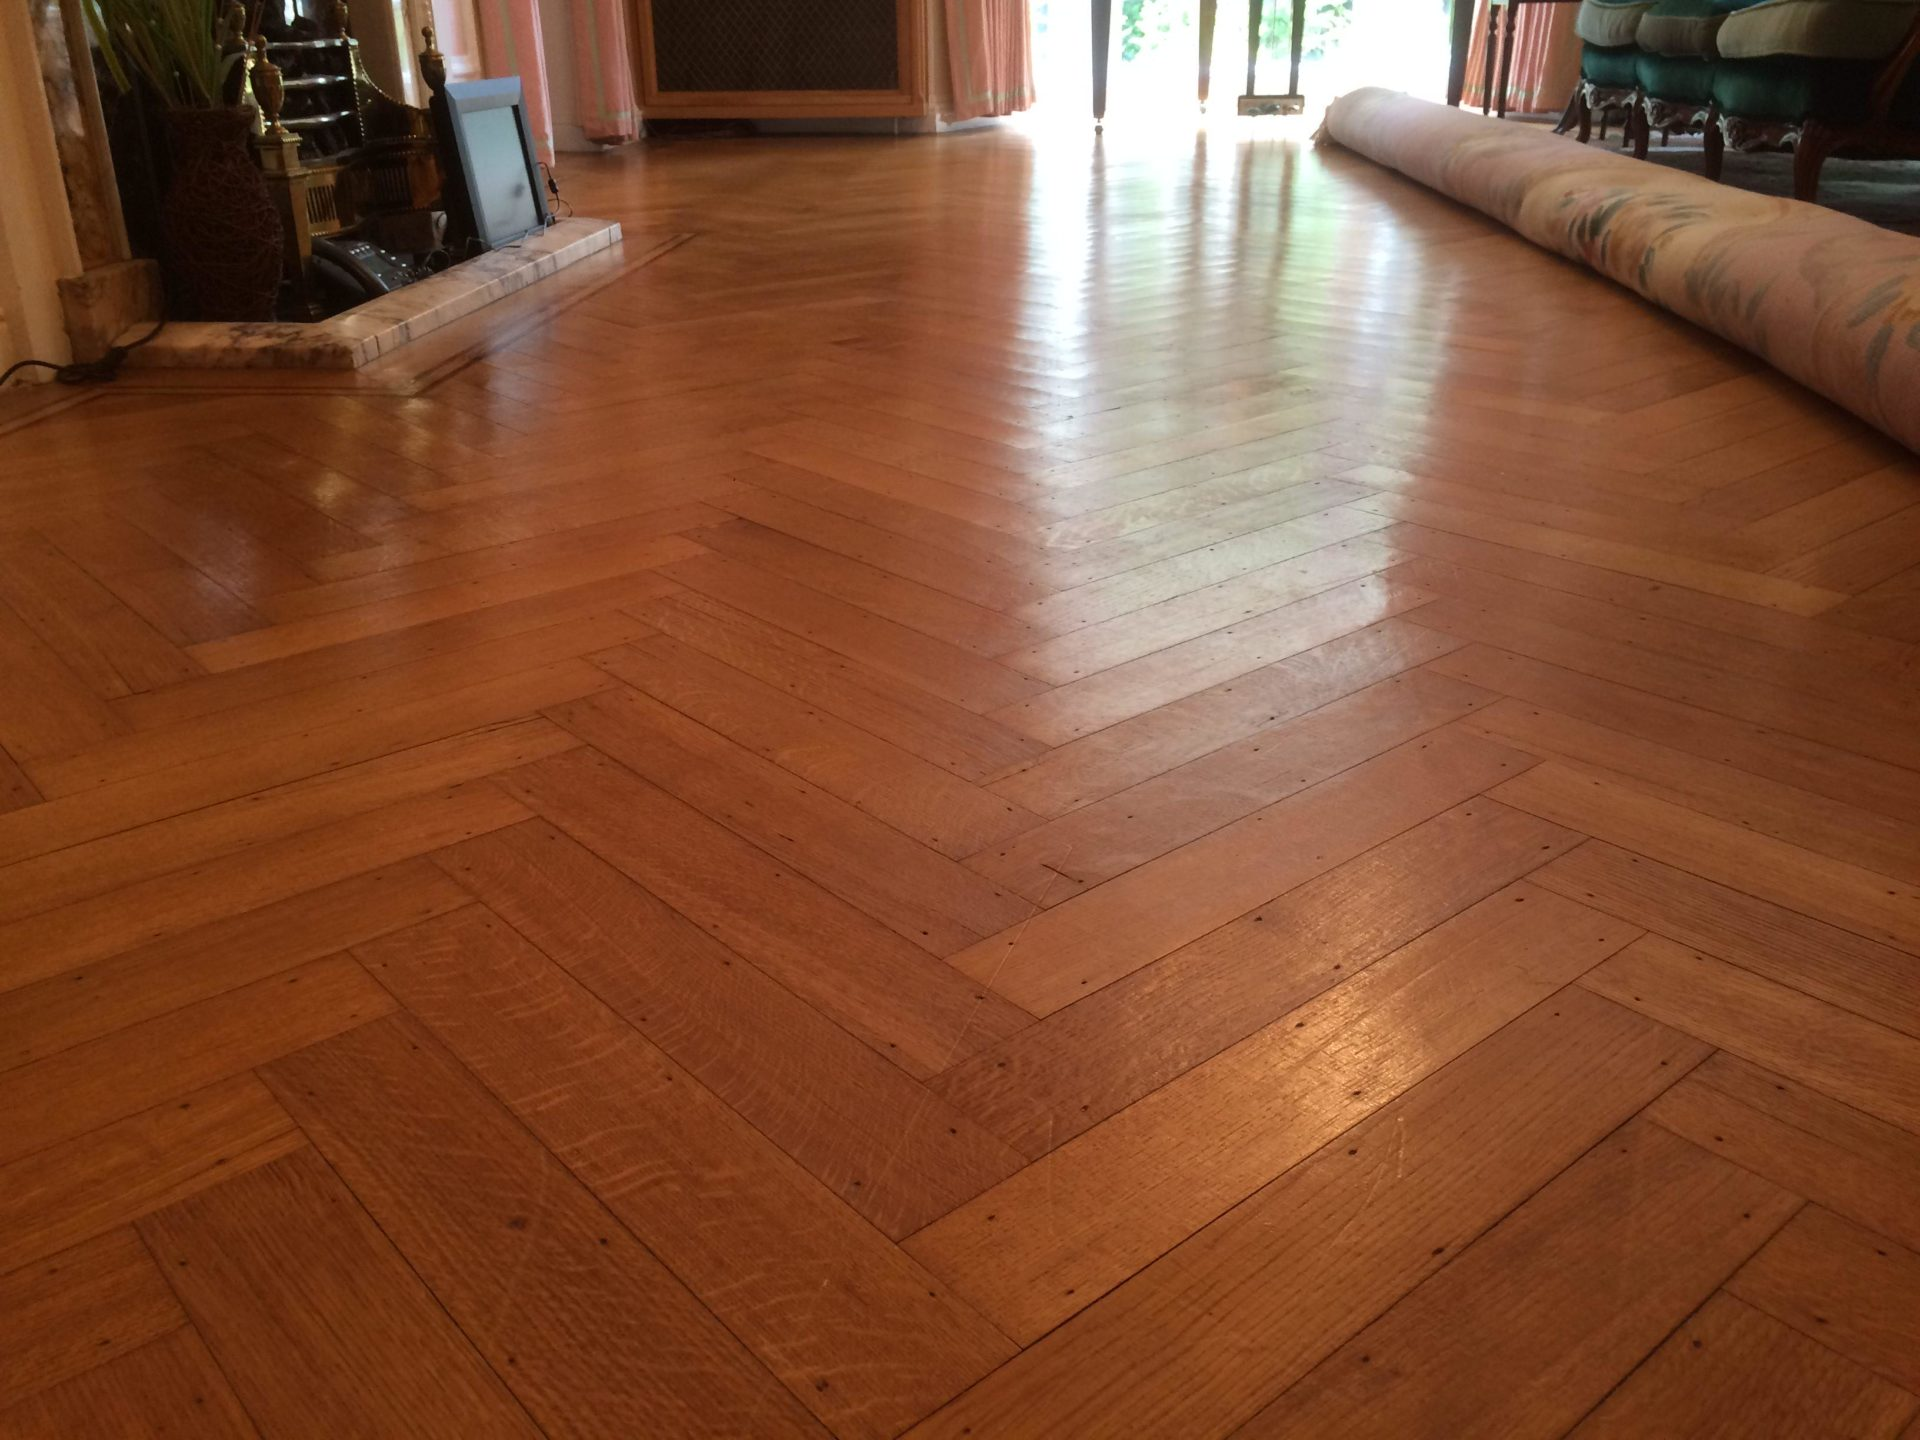 Wood Floor Cleaning Company  Brighton  Hove East Sussex